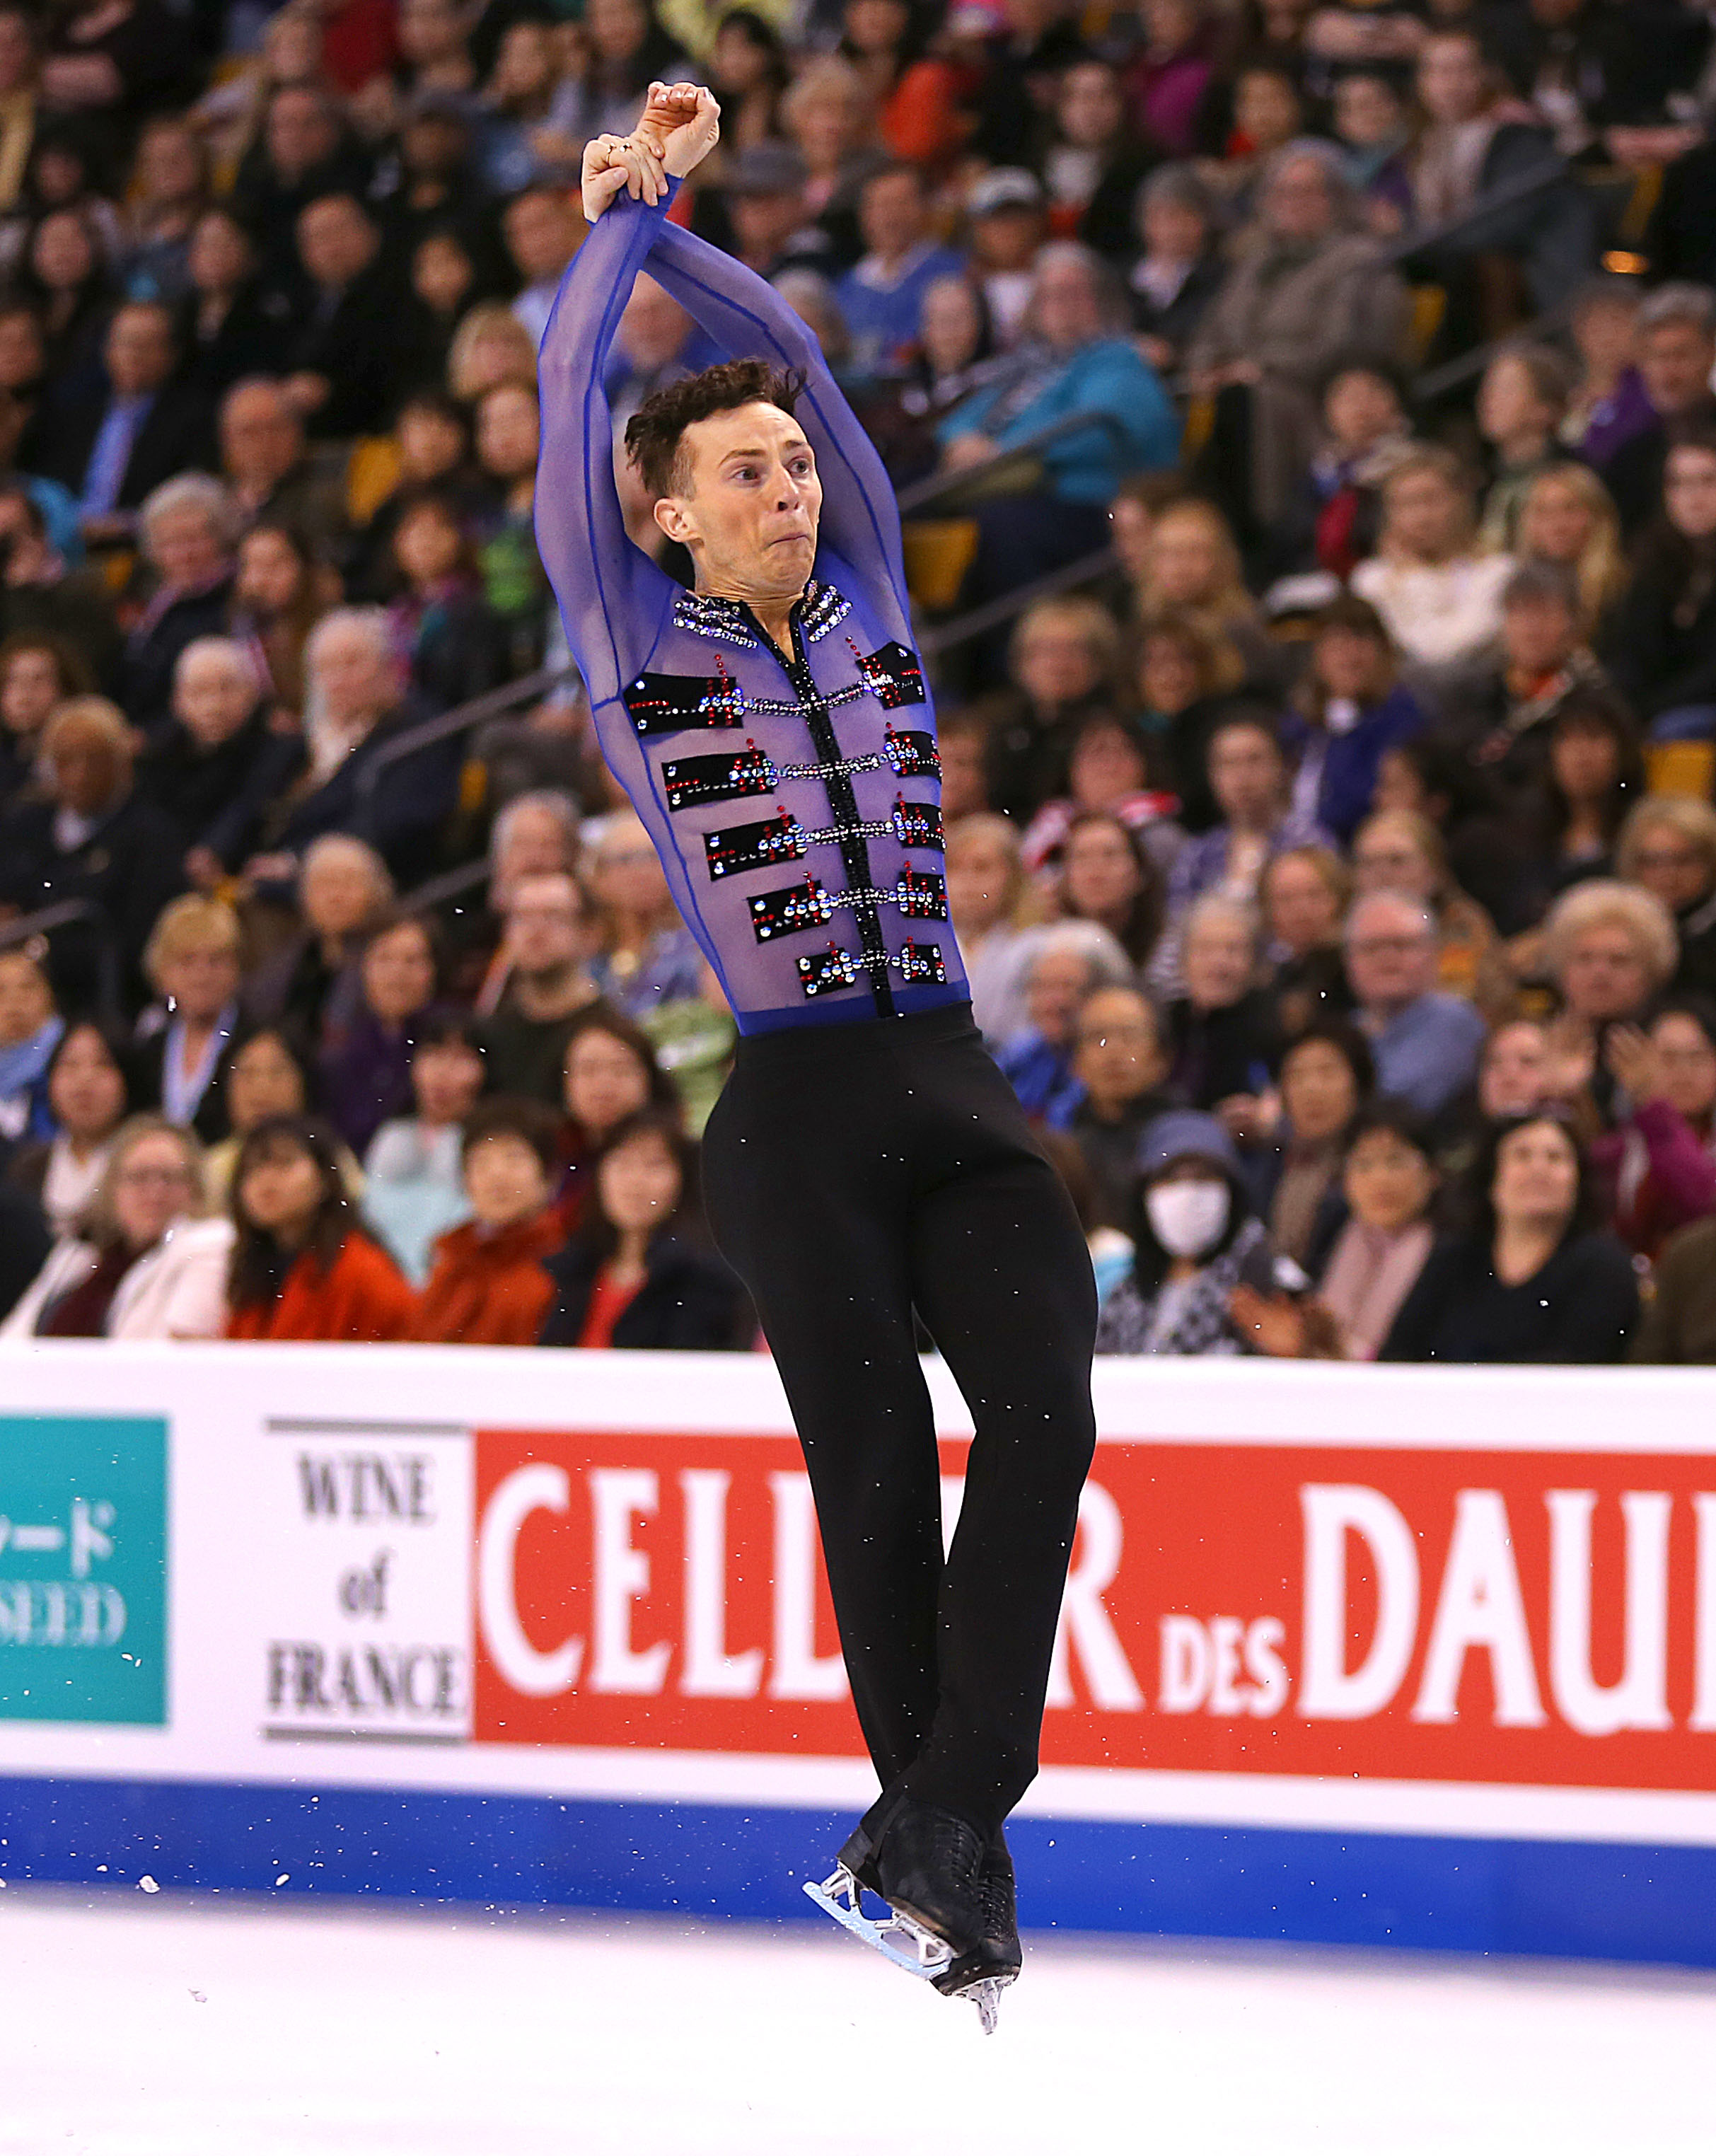 Adam Rippon from the United States jumps during the Mens Free Skate Program competition of the World Figure Skating Championships at TD Garden in Boston on April 1, 2016.